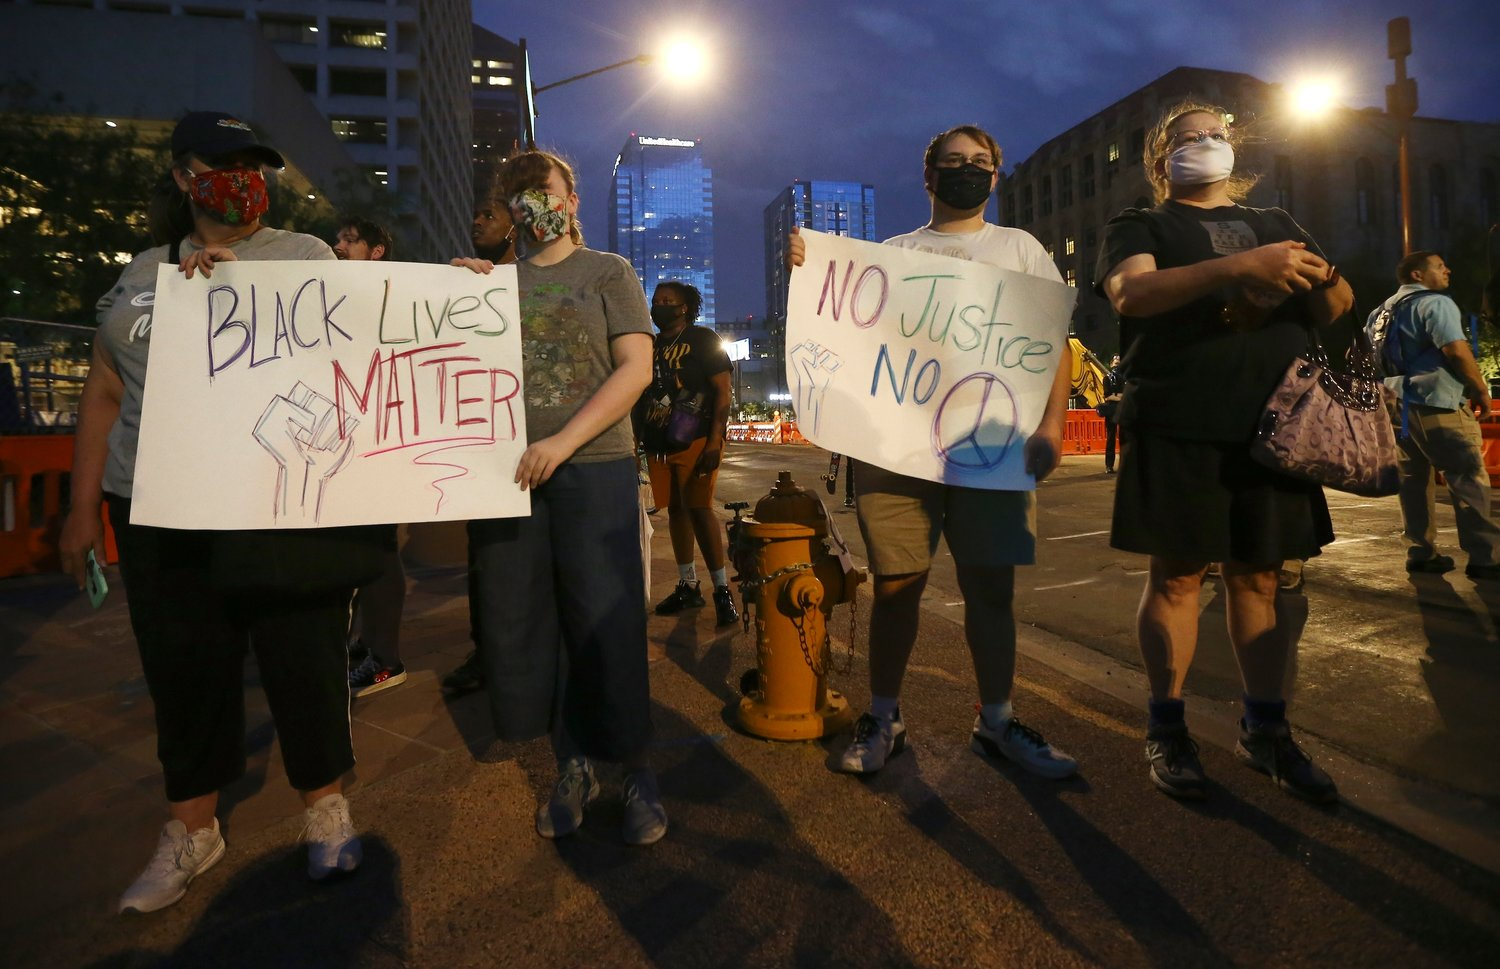 Protesters gather in front of Phoenix City Hall, Saturday, May 30, 2020, in Phoenix while protesting the death of George Floyd, a handcuffed black man who died in Minneapolis police custody on May 25.